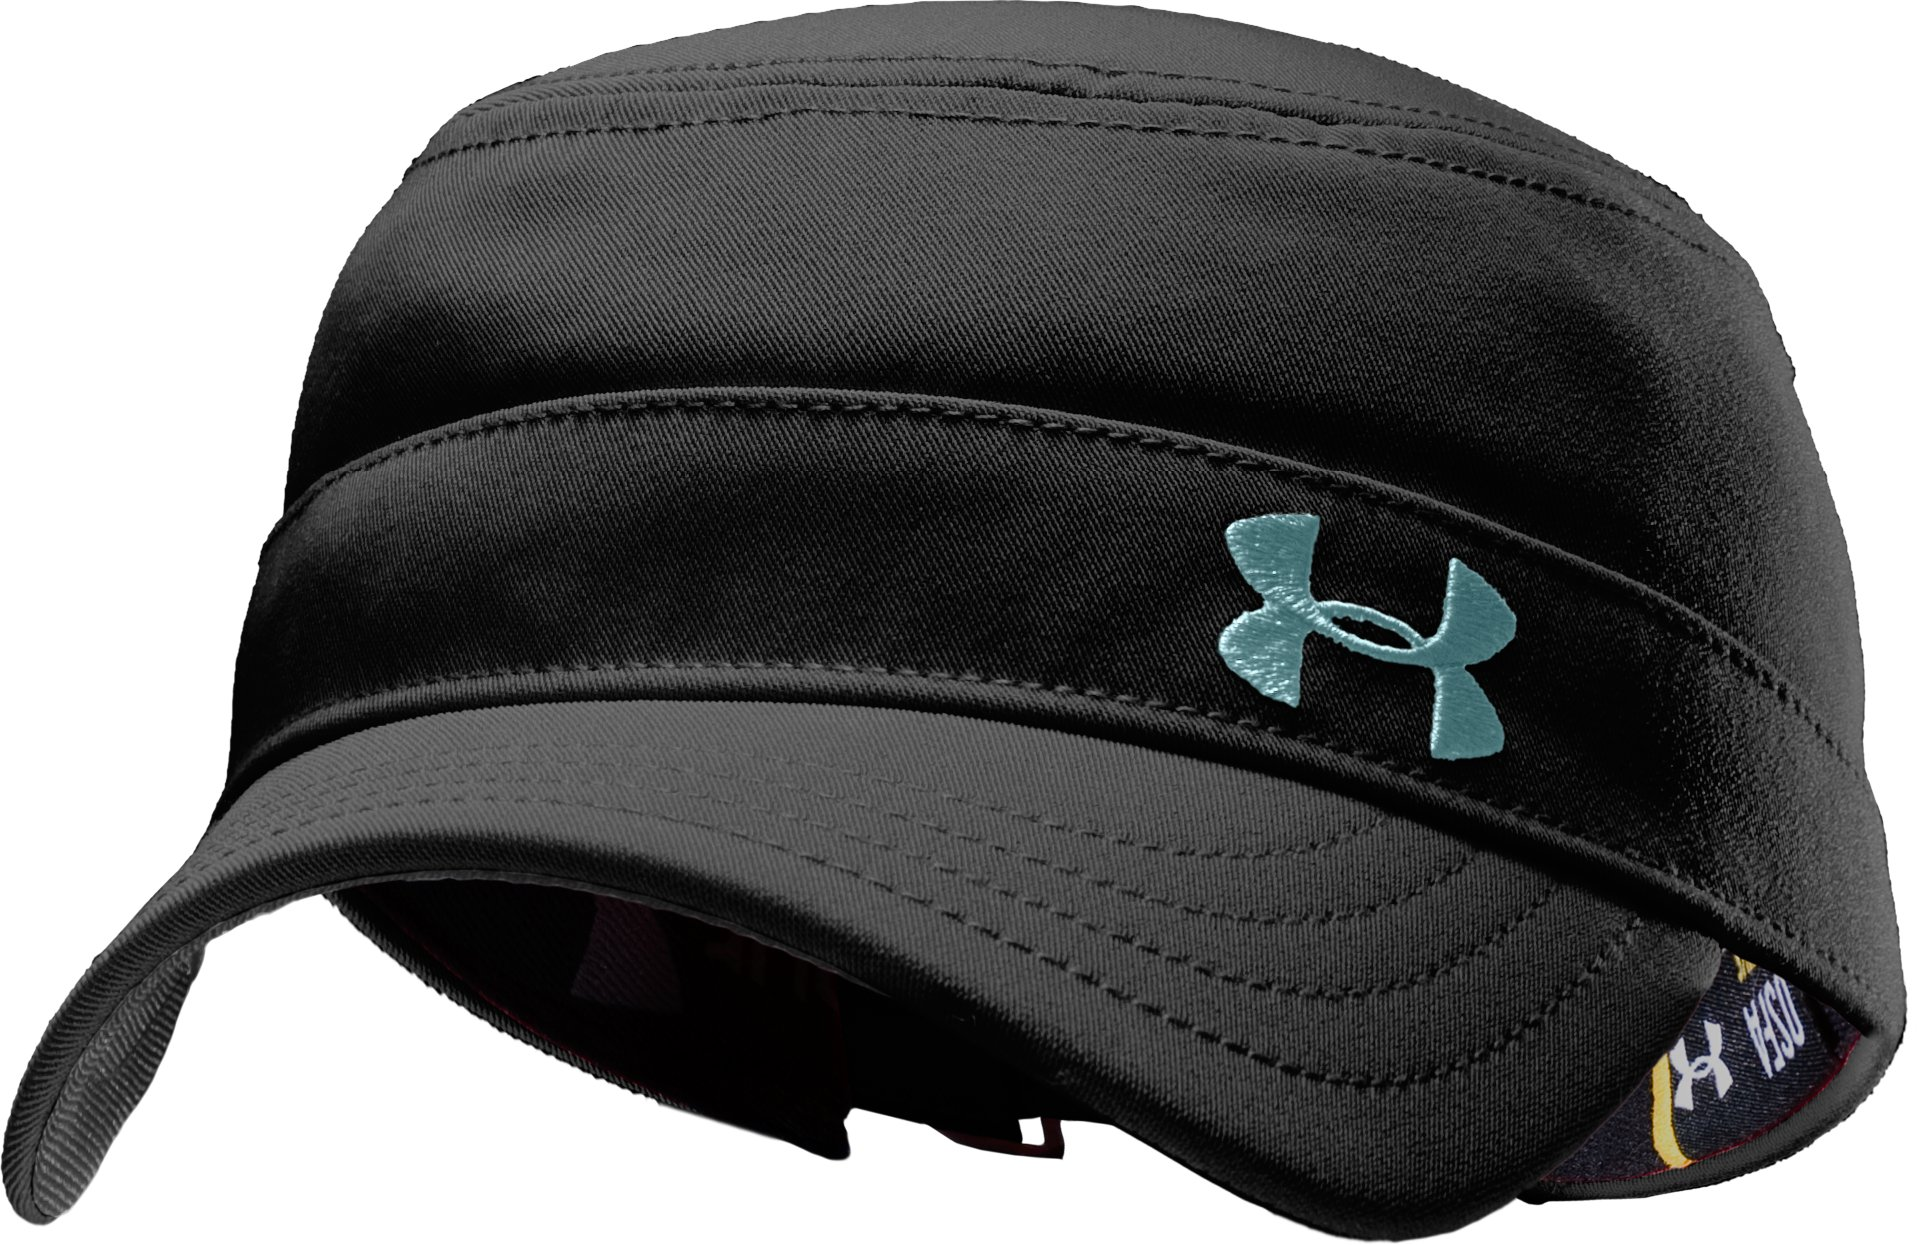 Women's Solid Versa Military Cap, Black , zoomed image